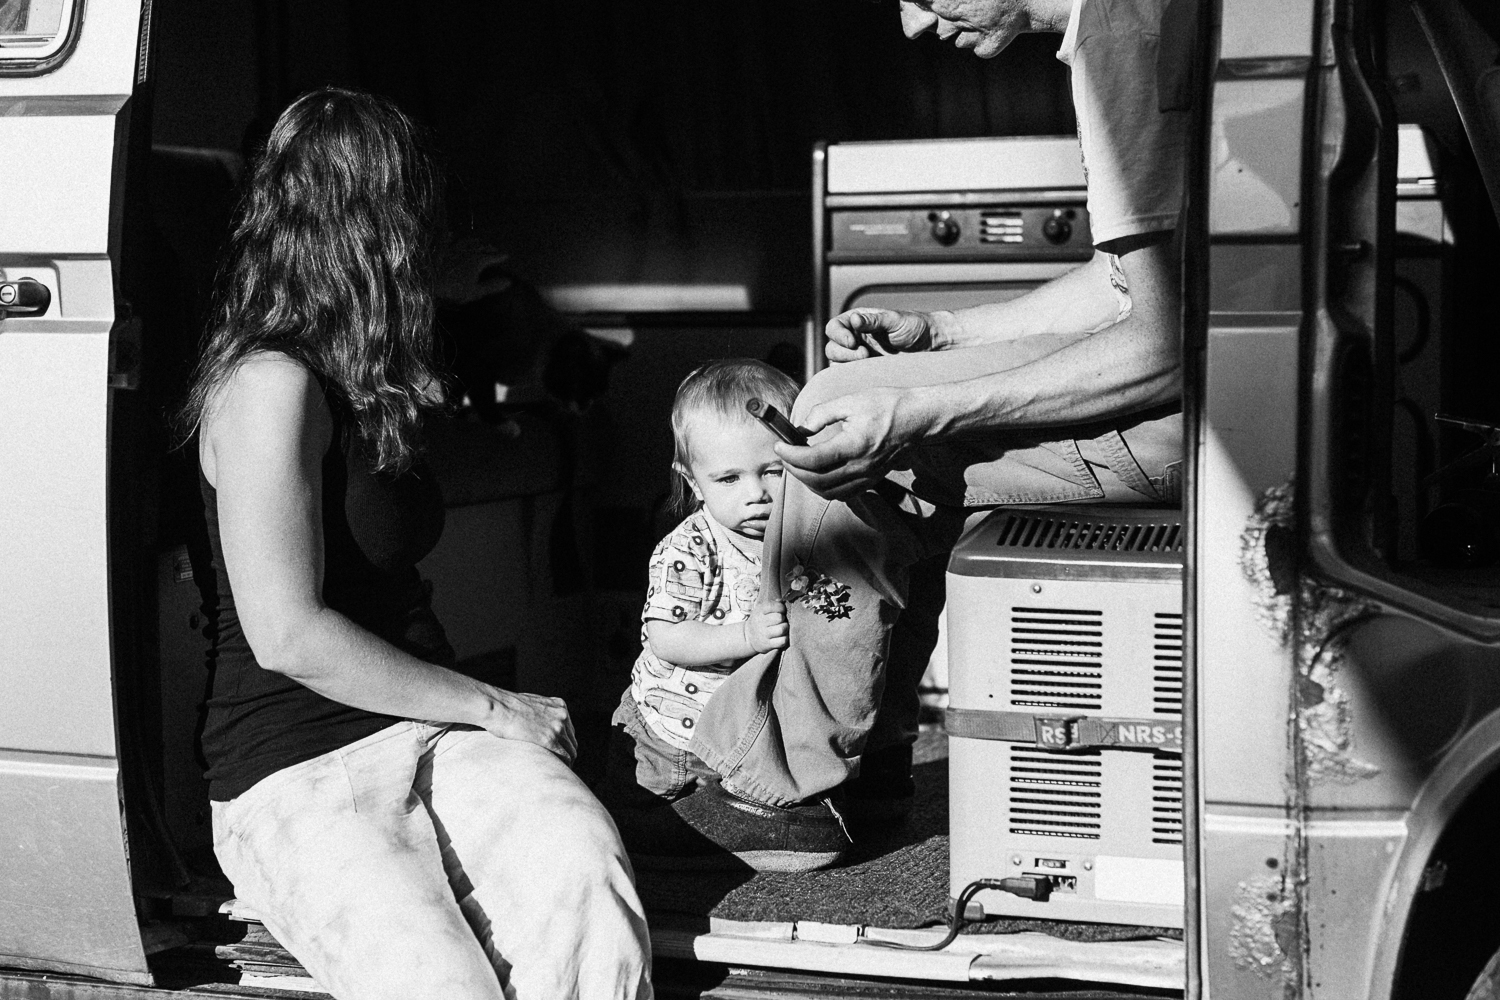 candid-artistic-black-and-white-photo-of-parents-and-child-siiting-in-van-during-in-home-session-with-jen-fairchild-photography